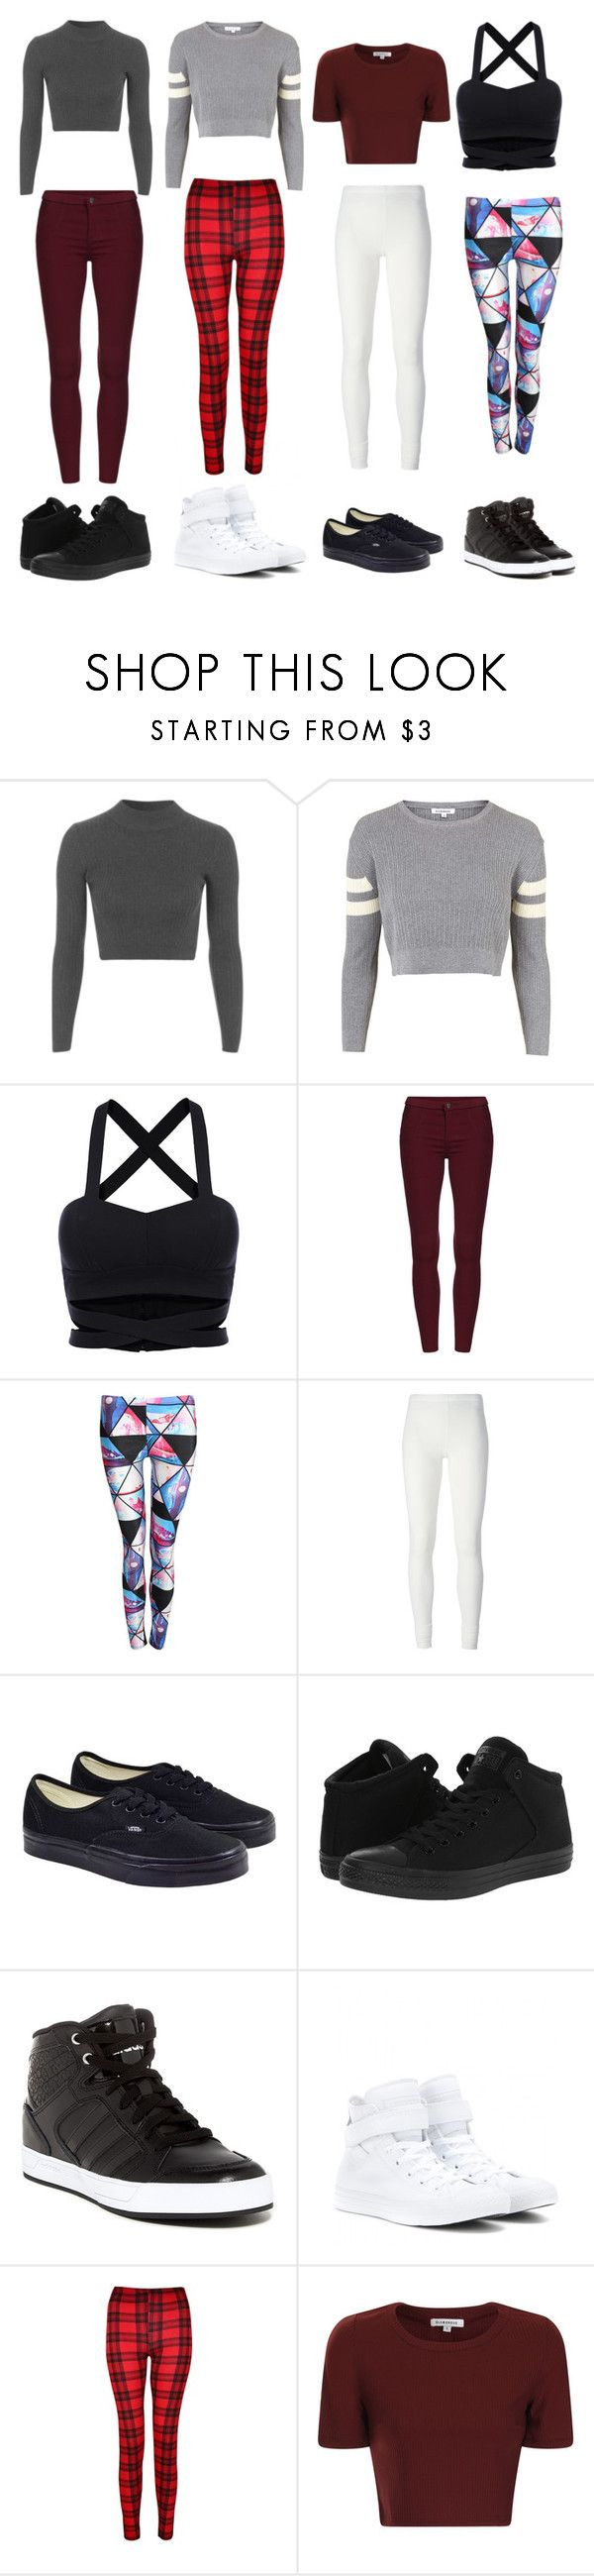 """""""Dance Clothes"""" by tiara-drumsrock ❤ liked on Polyvore featuring Topshop, Pilot, Rick Owens Lilies, Vans, Converse, adidas, Glamorous, cute, dance and clothes"""